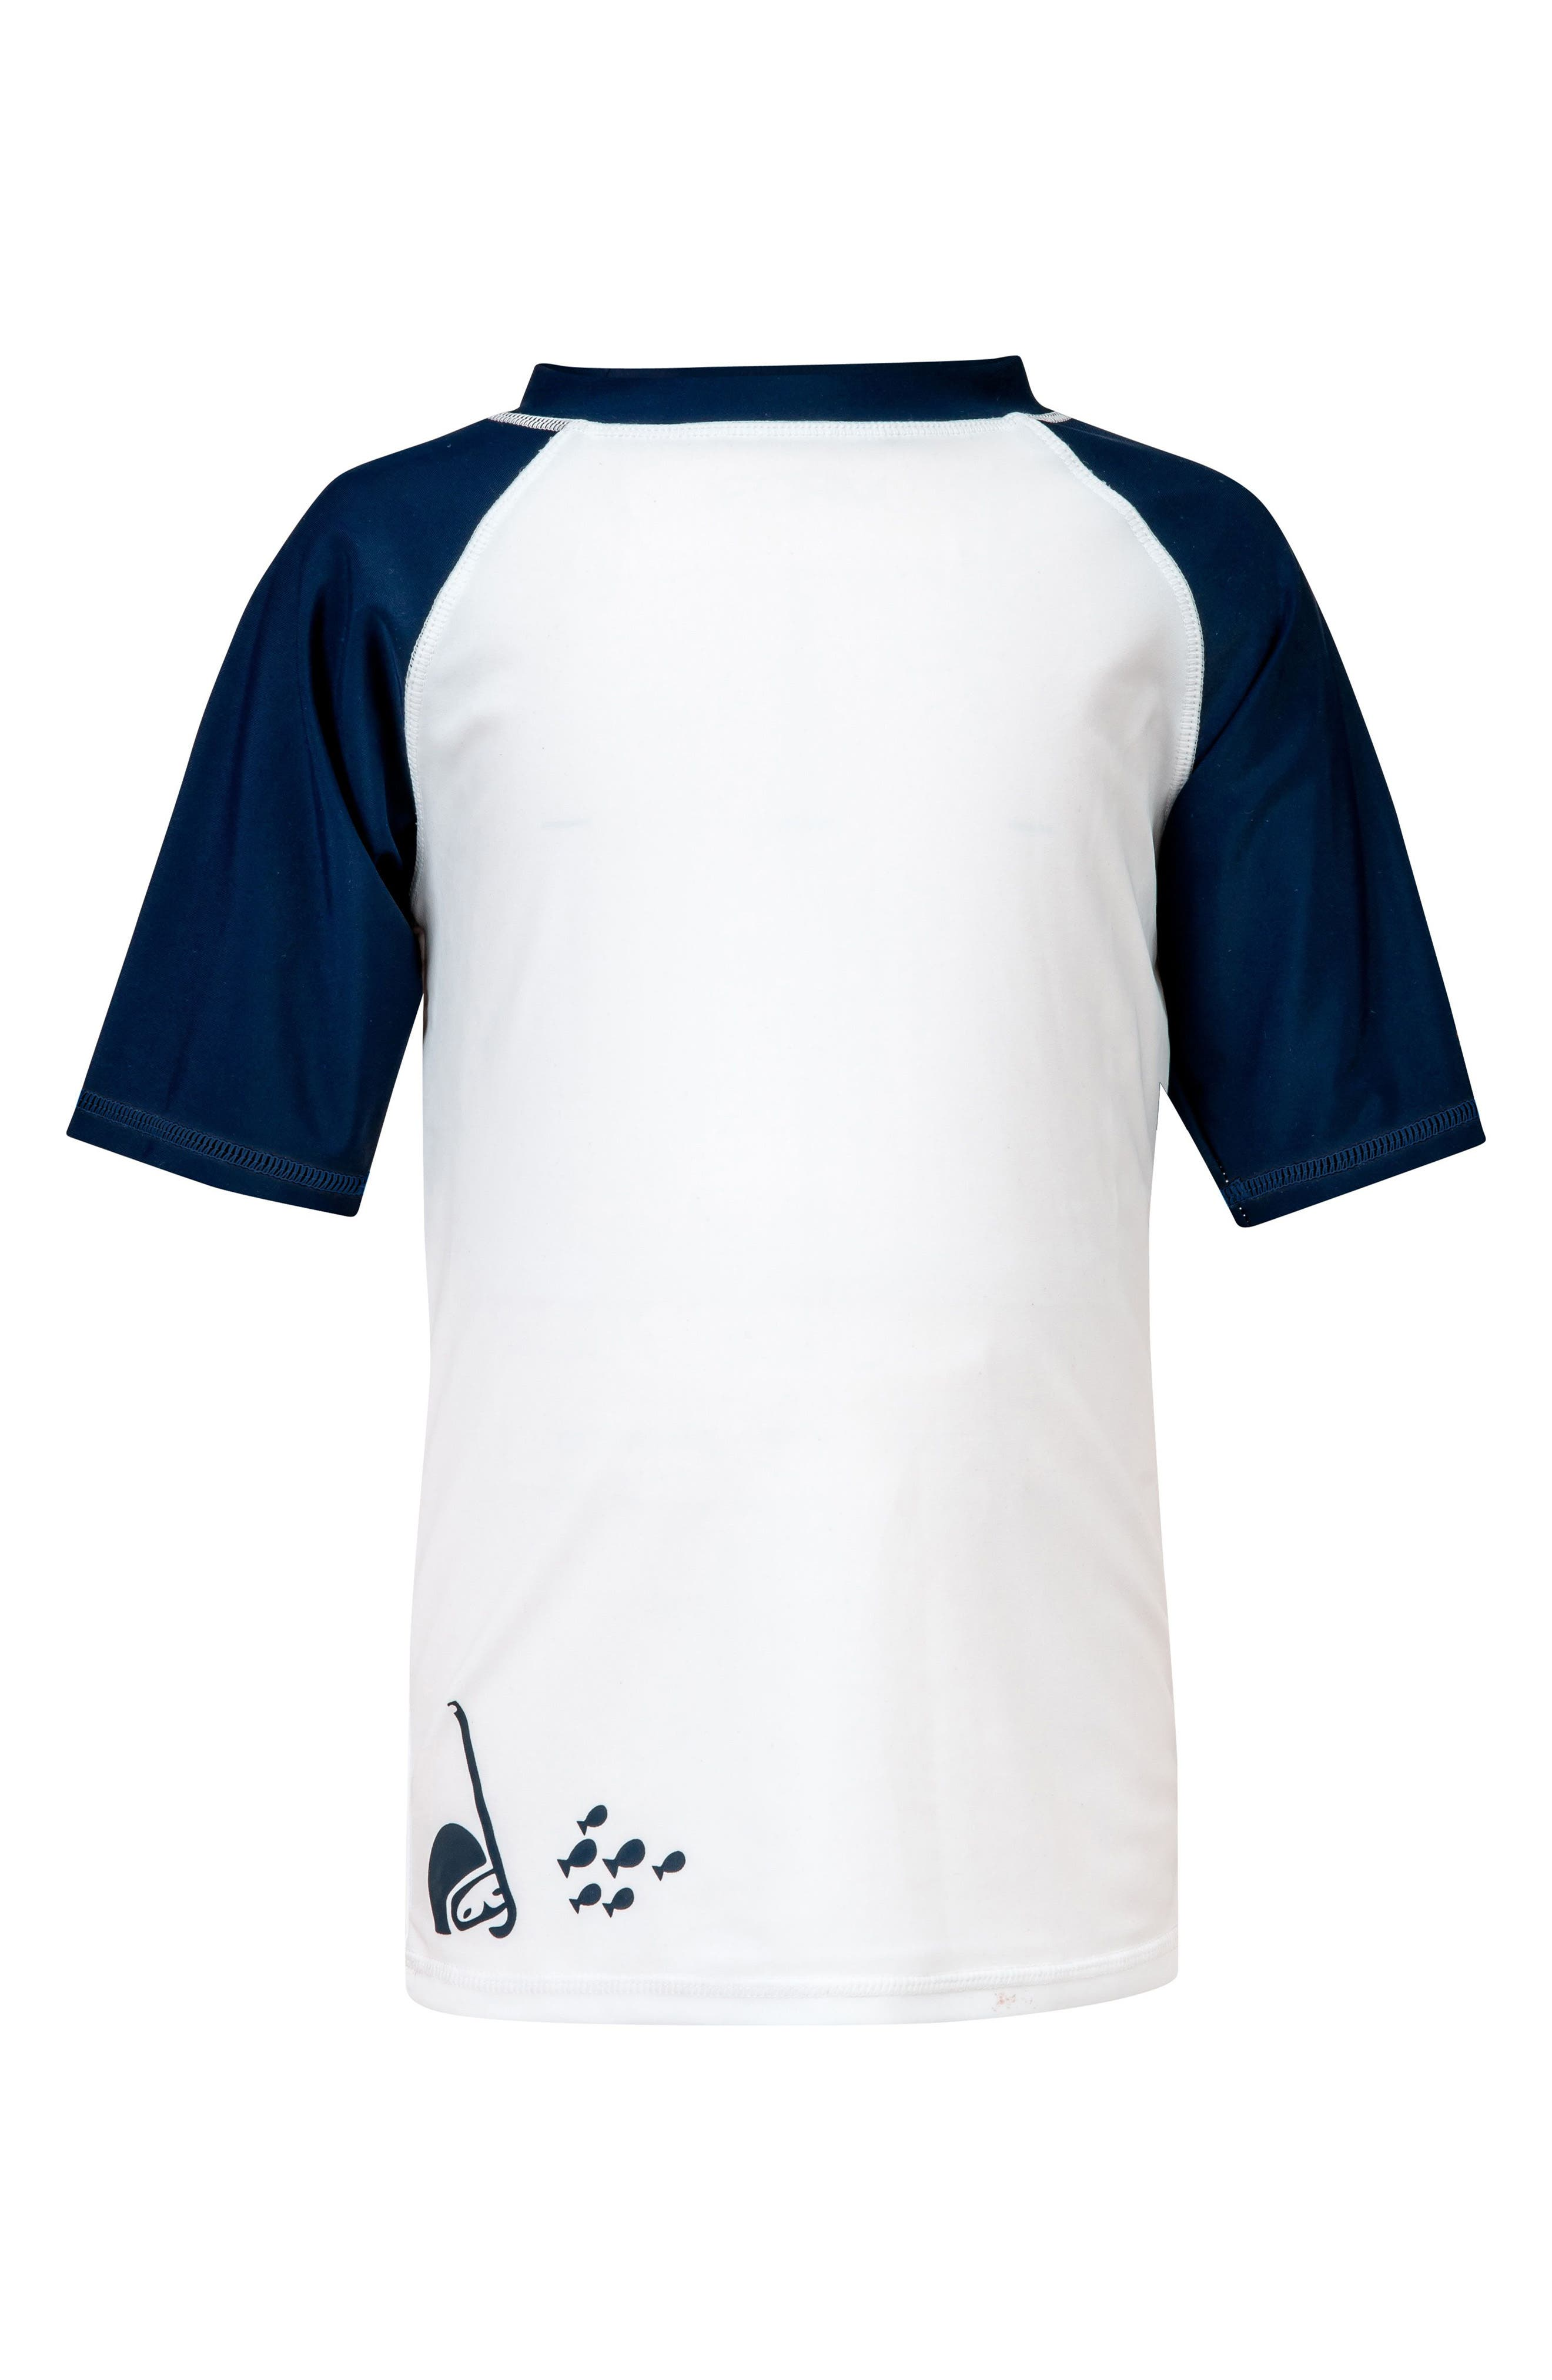 Ocean Explorer Short Sleeve Rashguard,                         Main,                         color, White/ Navy